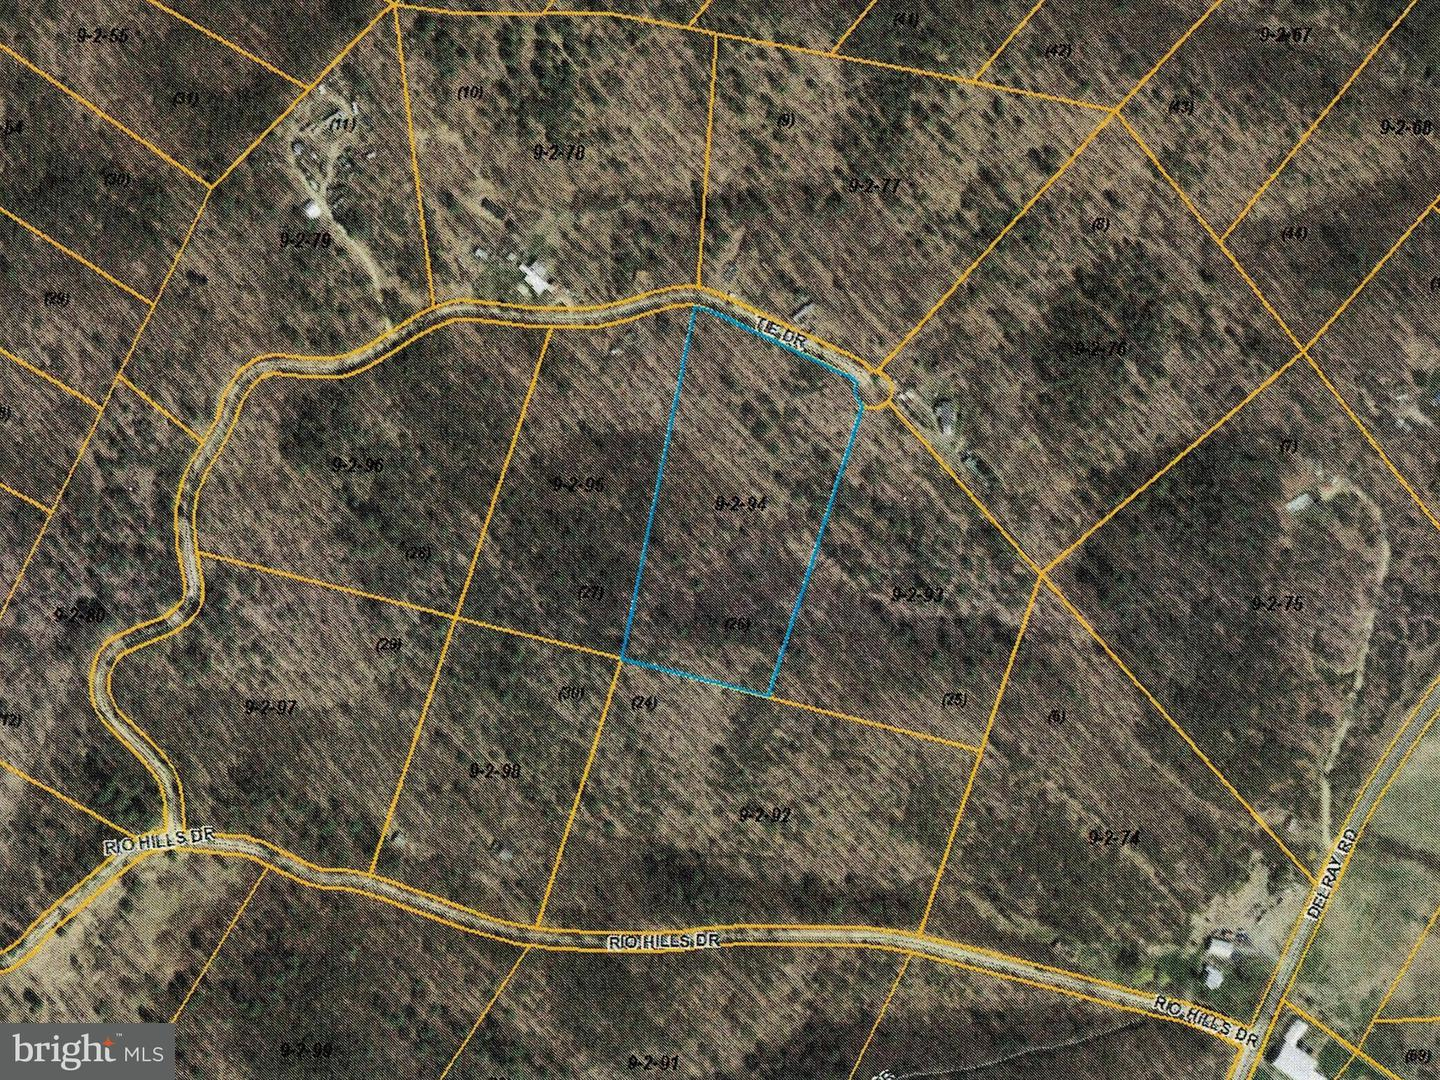 Land for Sale at Tie Dr Rio, West Virginia 26755 United States